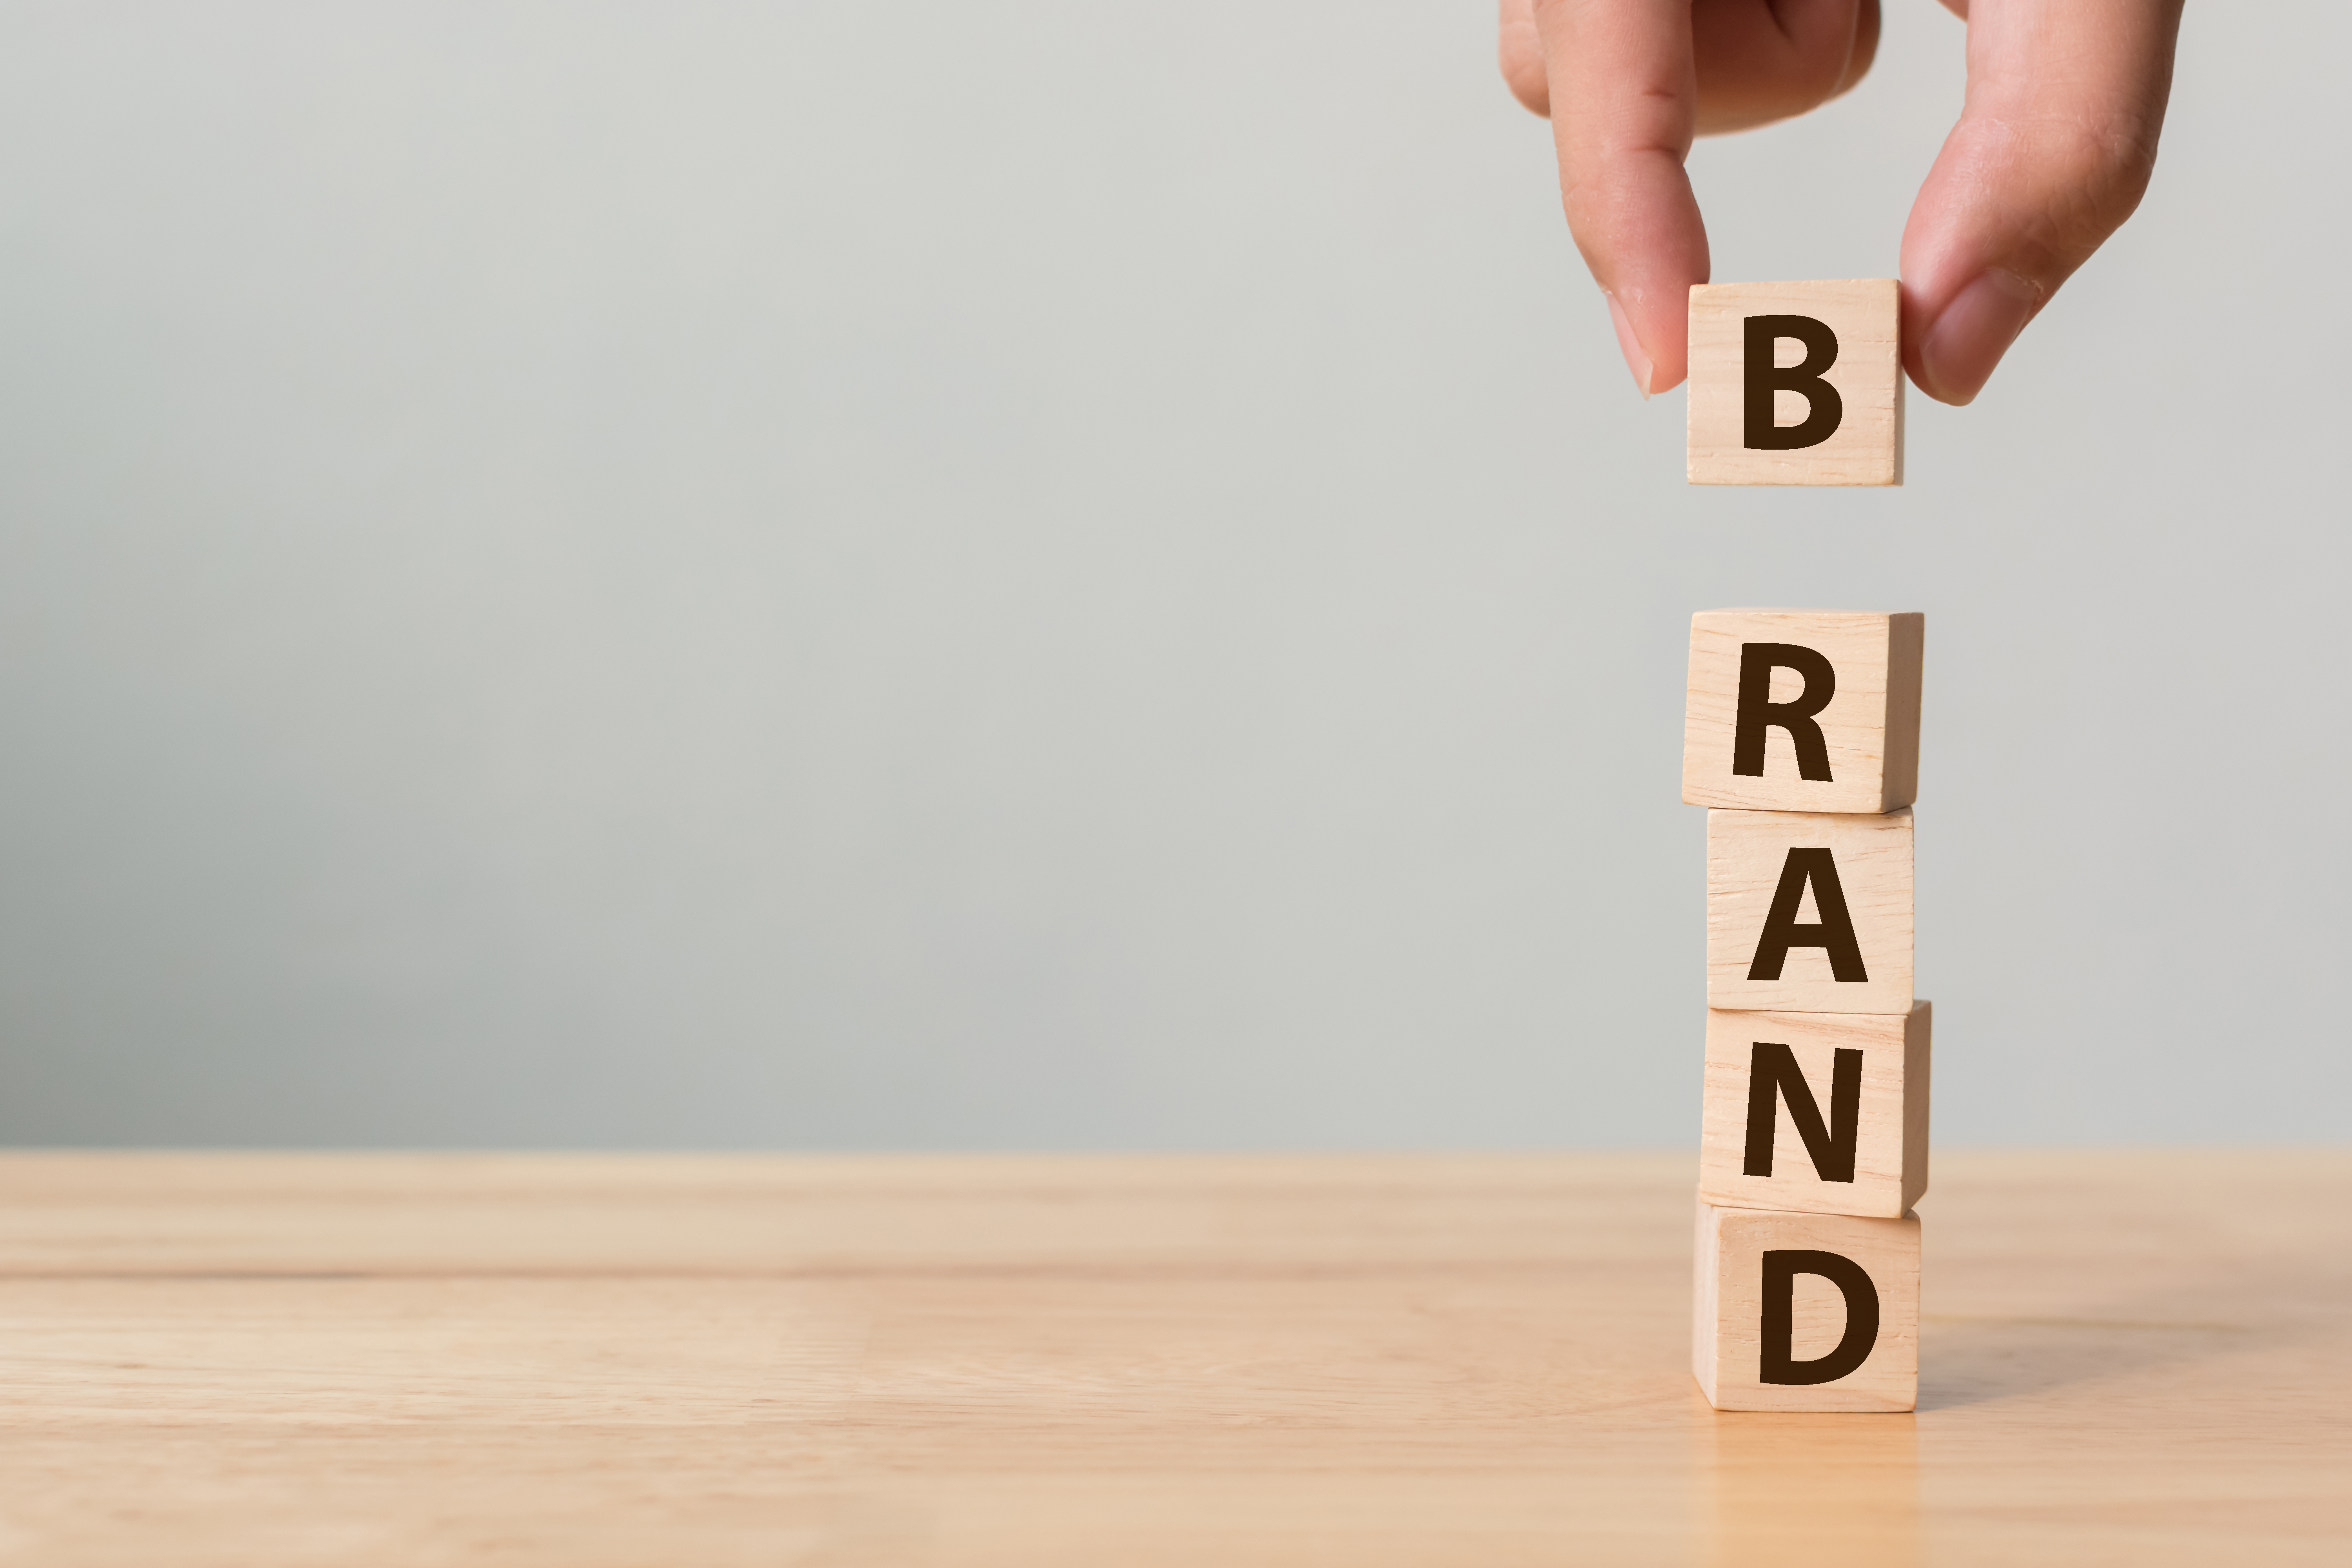 3 essential components of tracking brand value